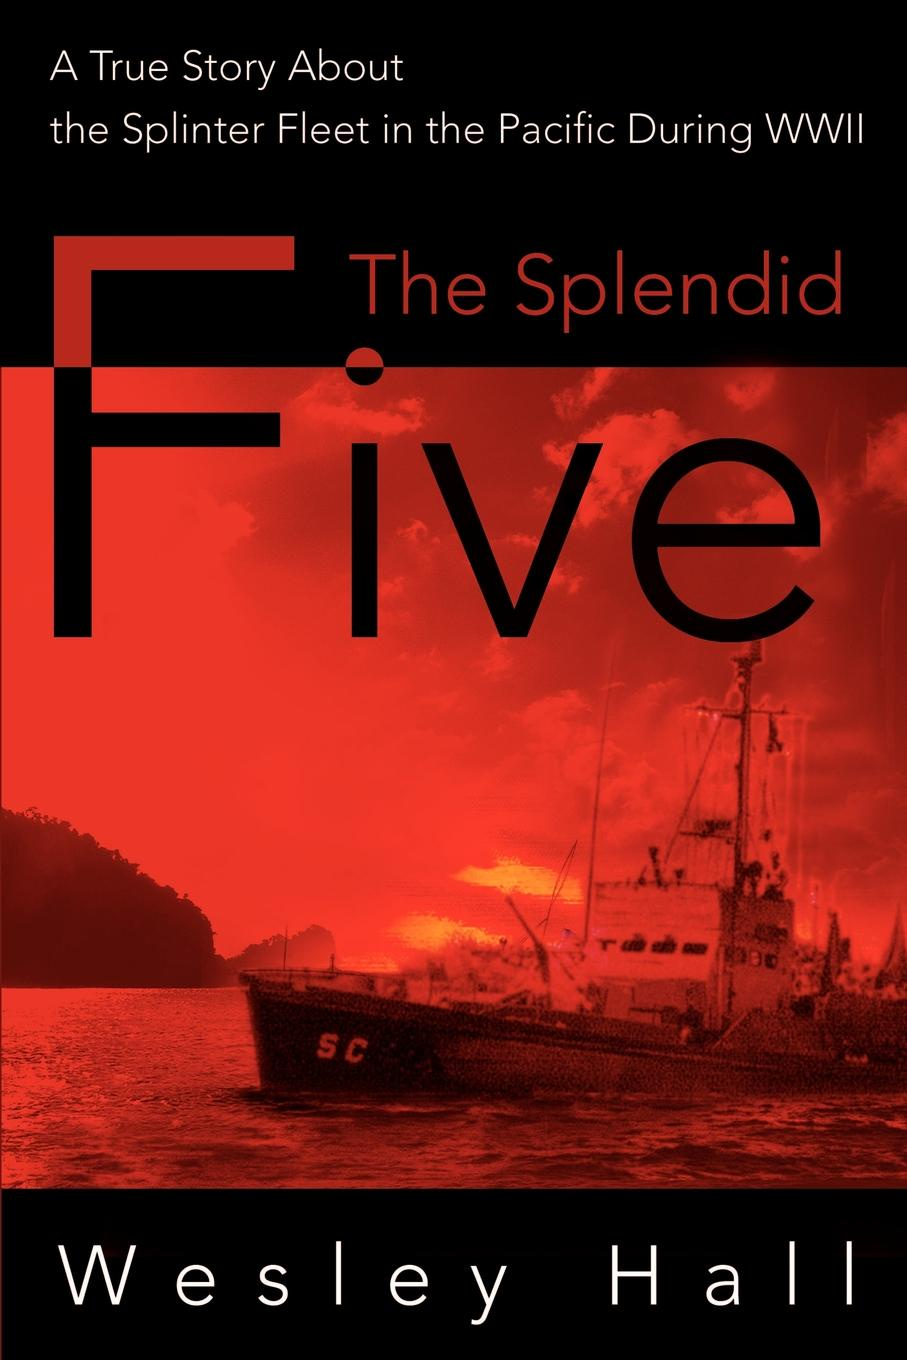 The Splendid Five. A True Story about the Splinter in the Pacific During WWII. Wesley E. Hall